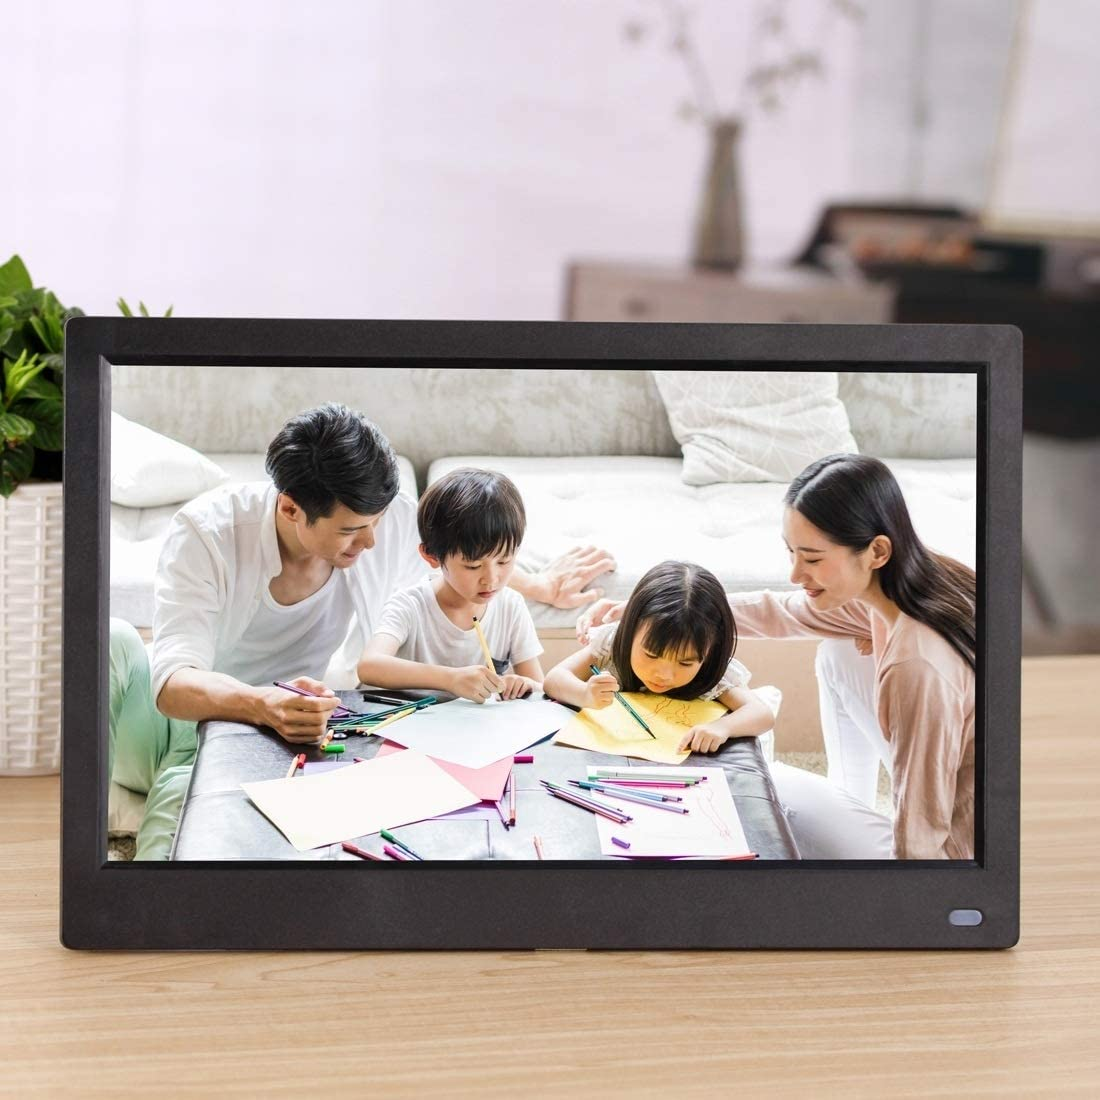 Under blast sales 12.5 Inch FHD LED Sale price Display Digital with Holder Frame Remo Photo